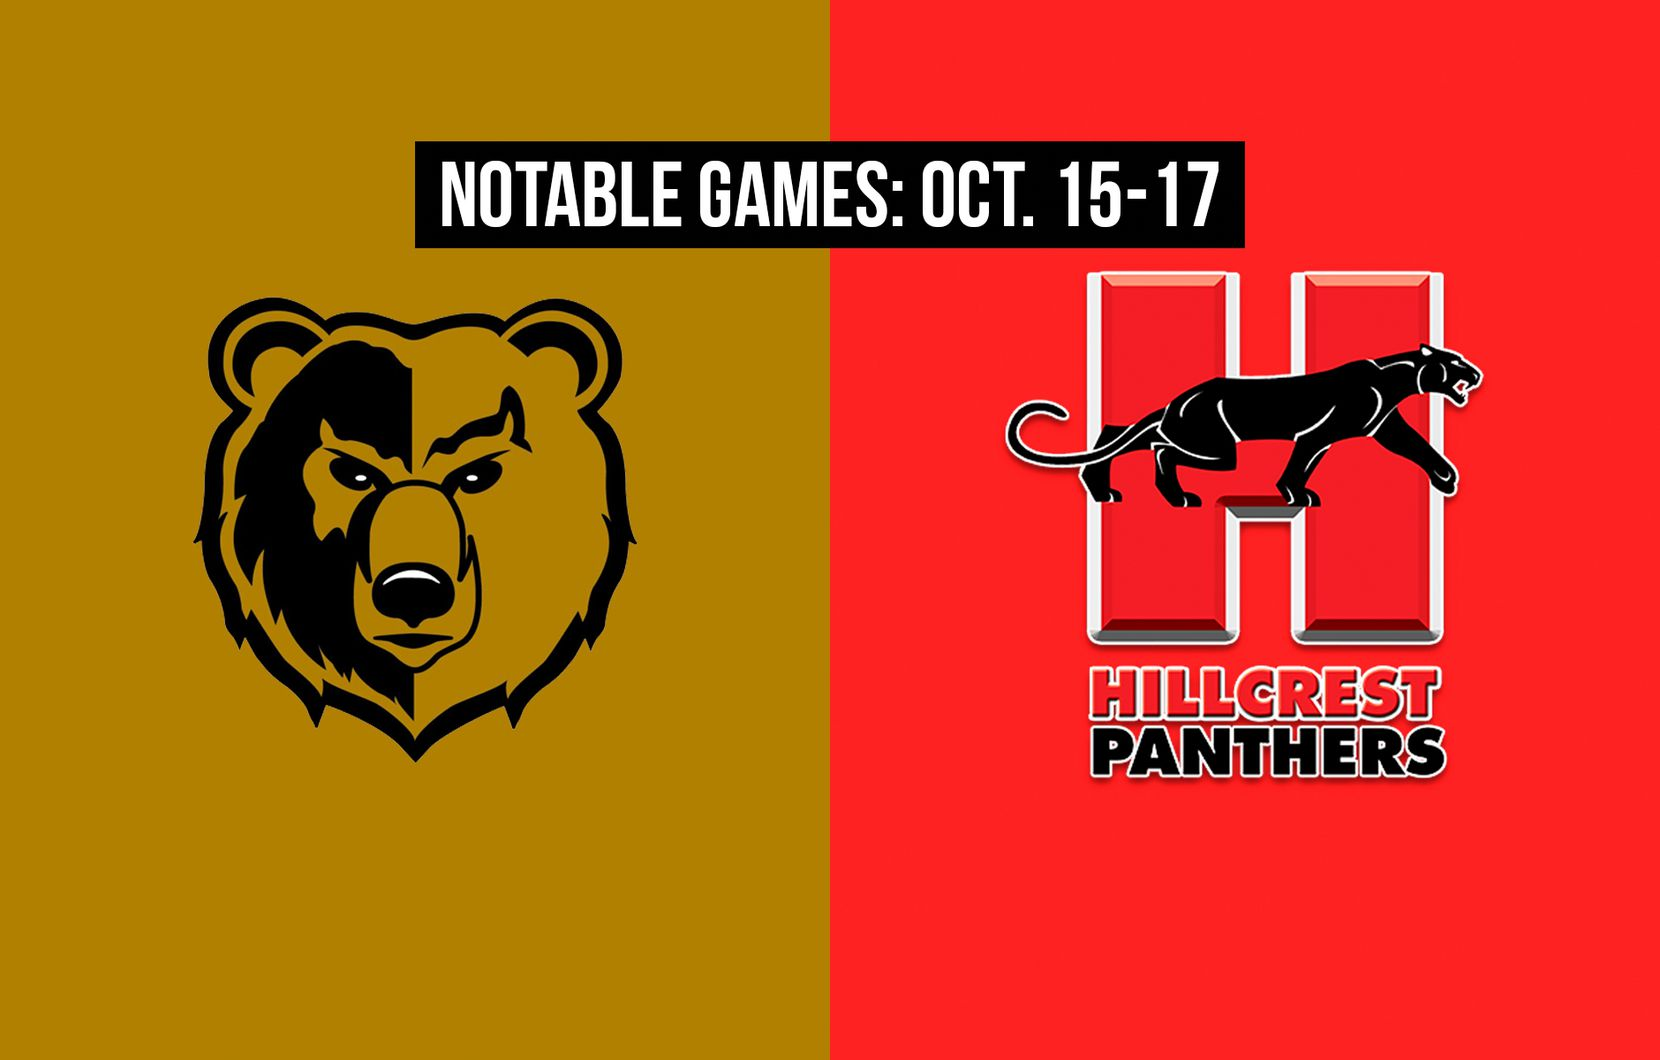 Notable games for the week of Oct. 15-17 of the 2020 season: South Oak Cliff vs. Hillcrest.